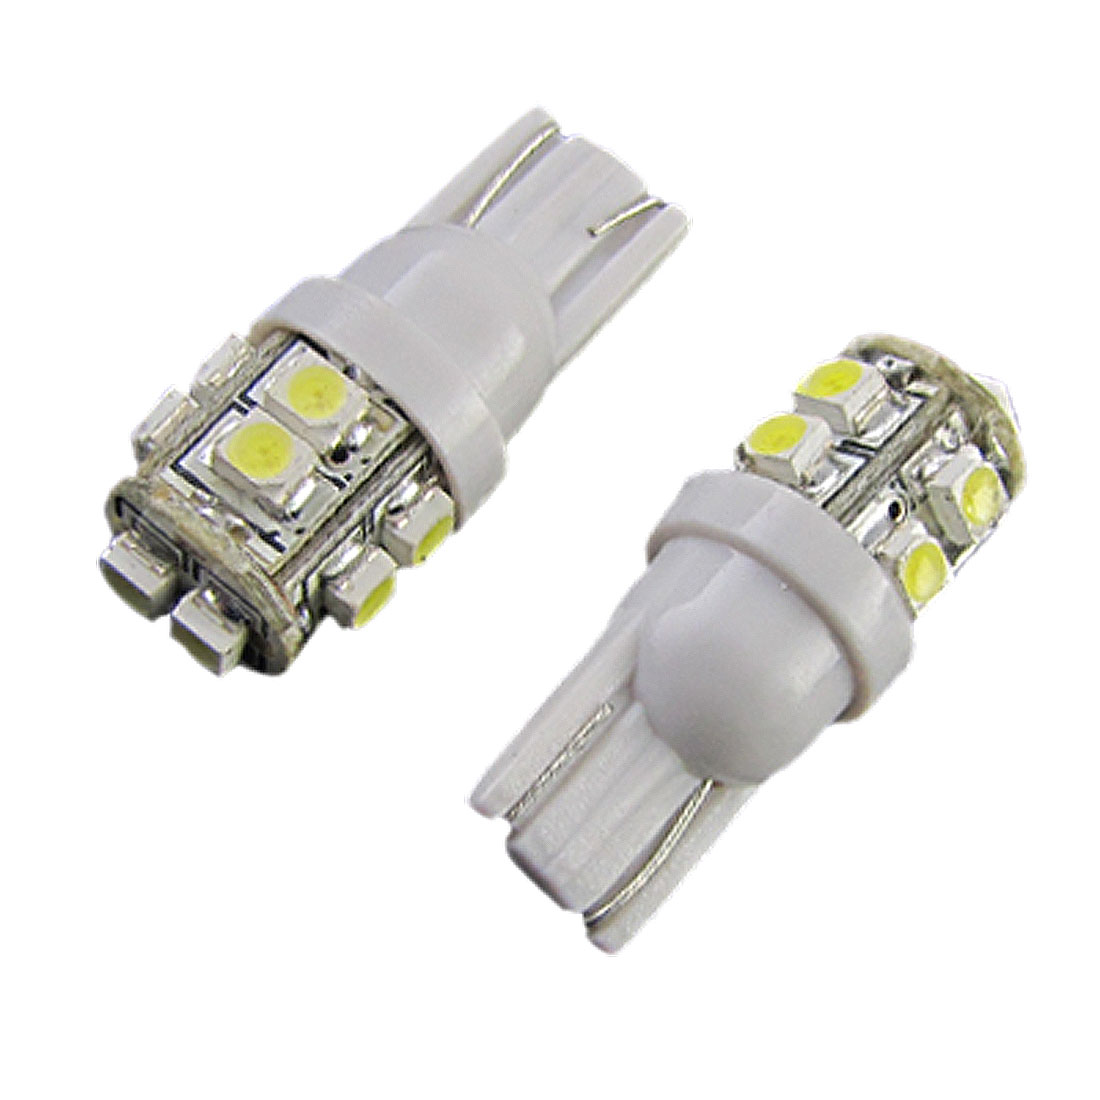 2X Car Corner Backup Brake T10 W5W White 1210 3528 SMD 10 LED Light